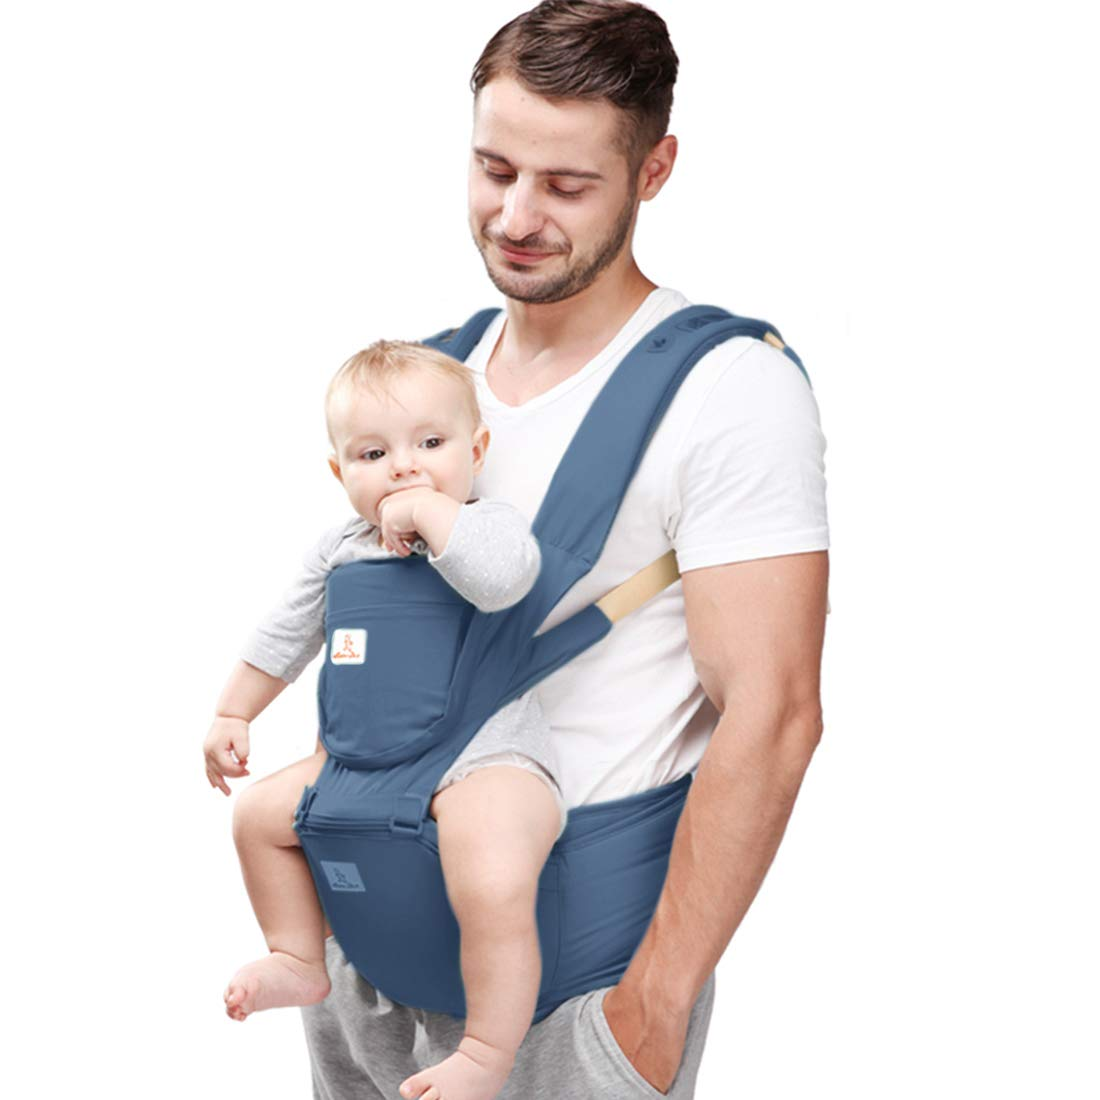 8 Best Baby Carriers To Buy 2020